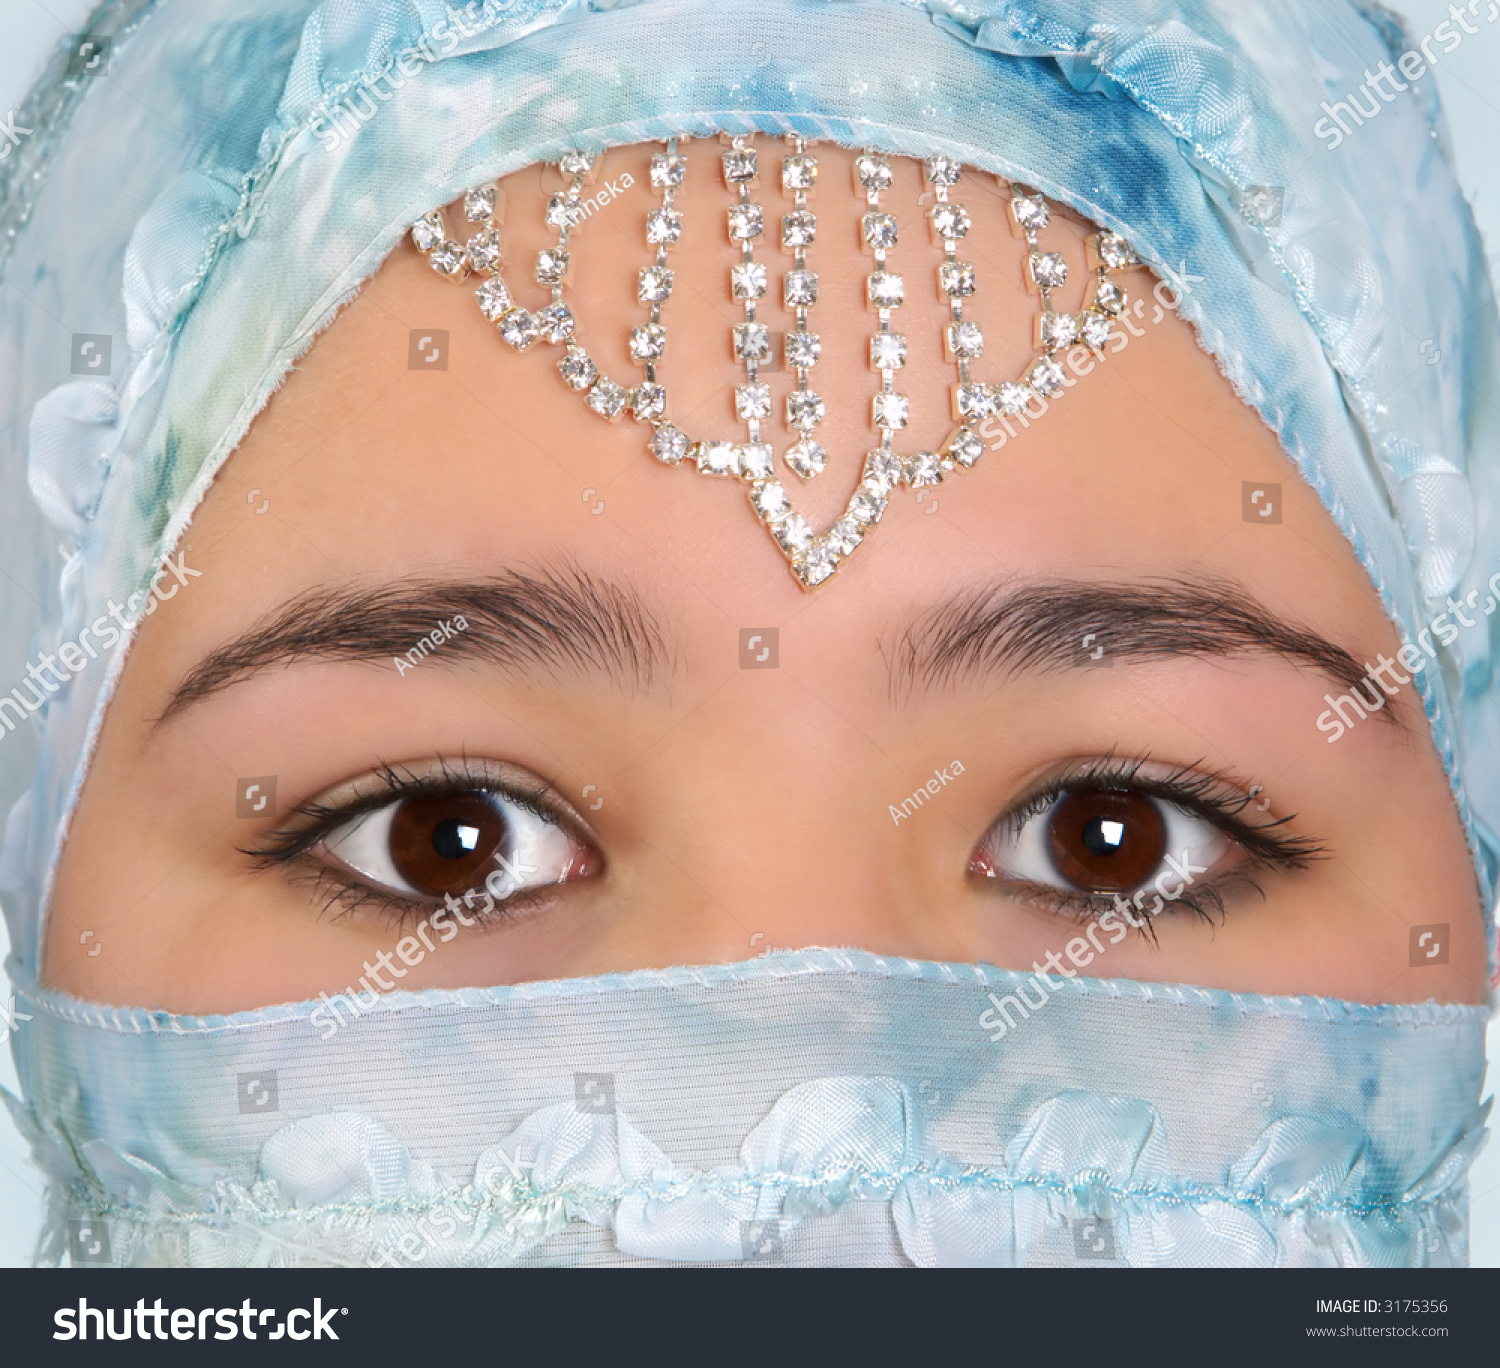 the mysterious blogger and the veiled id The minister's black veil no description by cameron schuette on 28 april 2011 tweet comments  hawthorne uses rhetorical questions because of the mysterious black veil, tension arises.